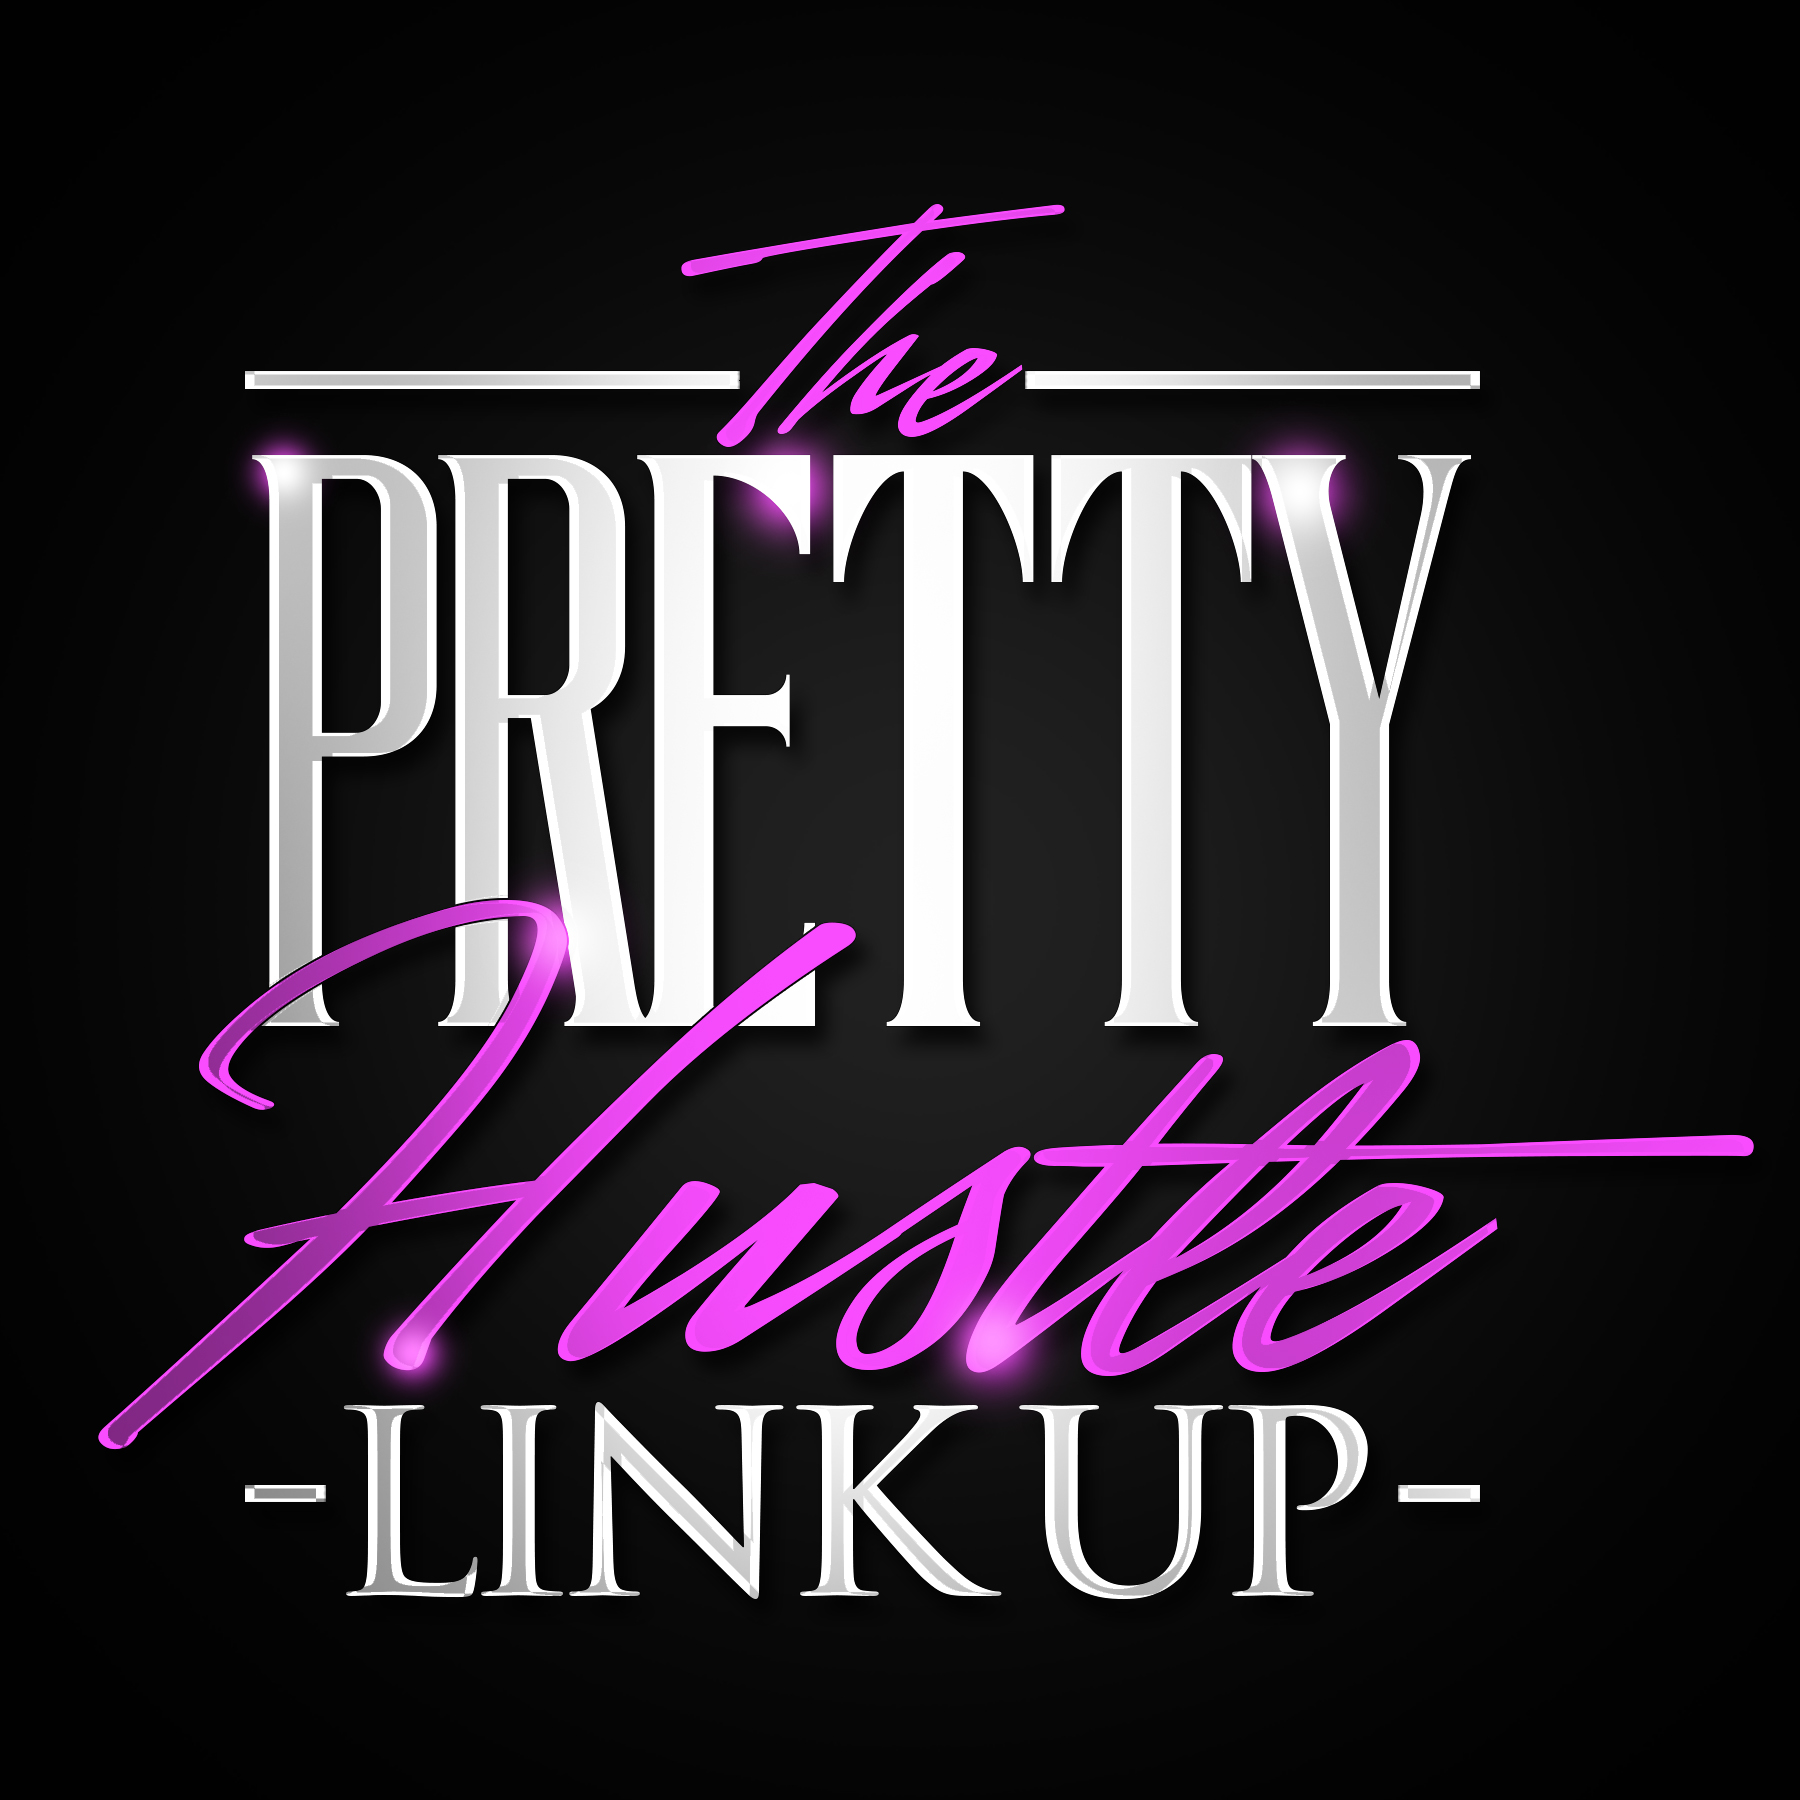 pretty hustle link up